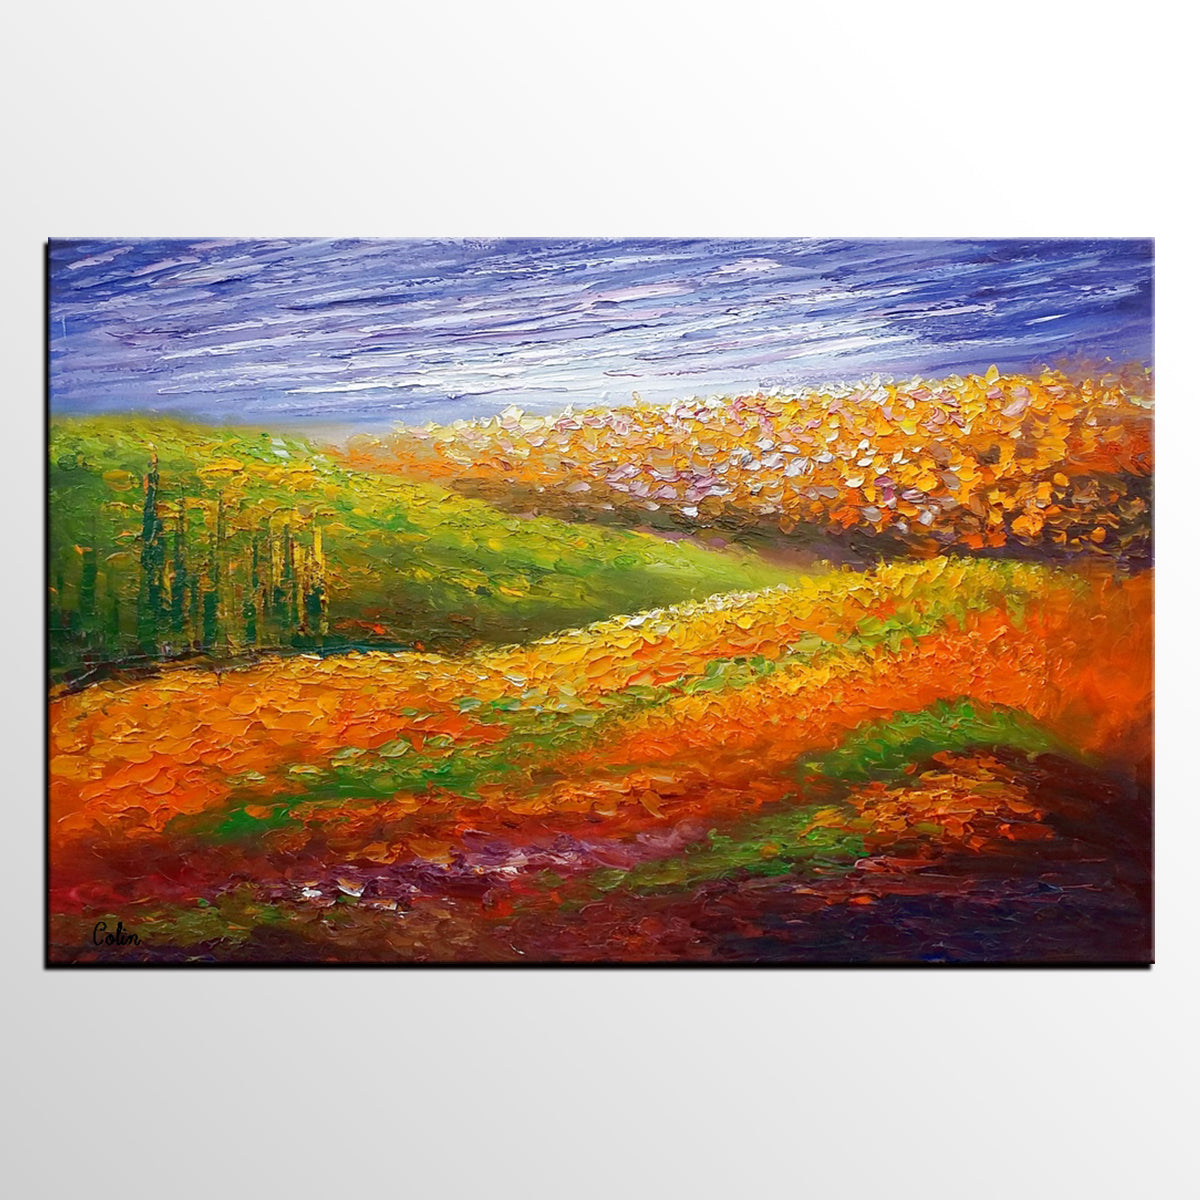 Oil Painting, Flower Field Painting, Abstra...